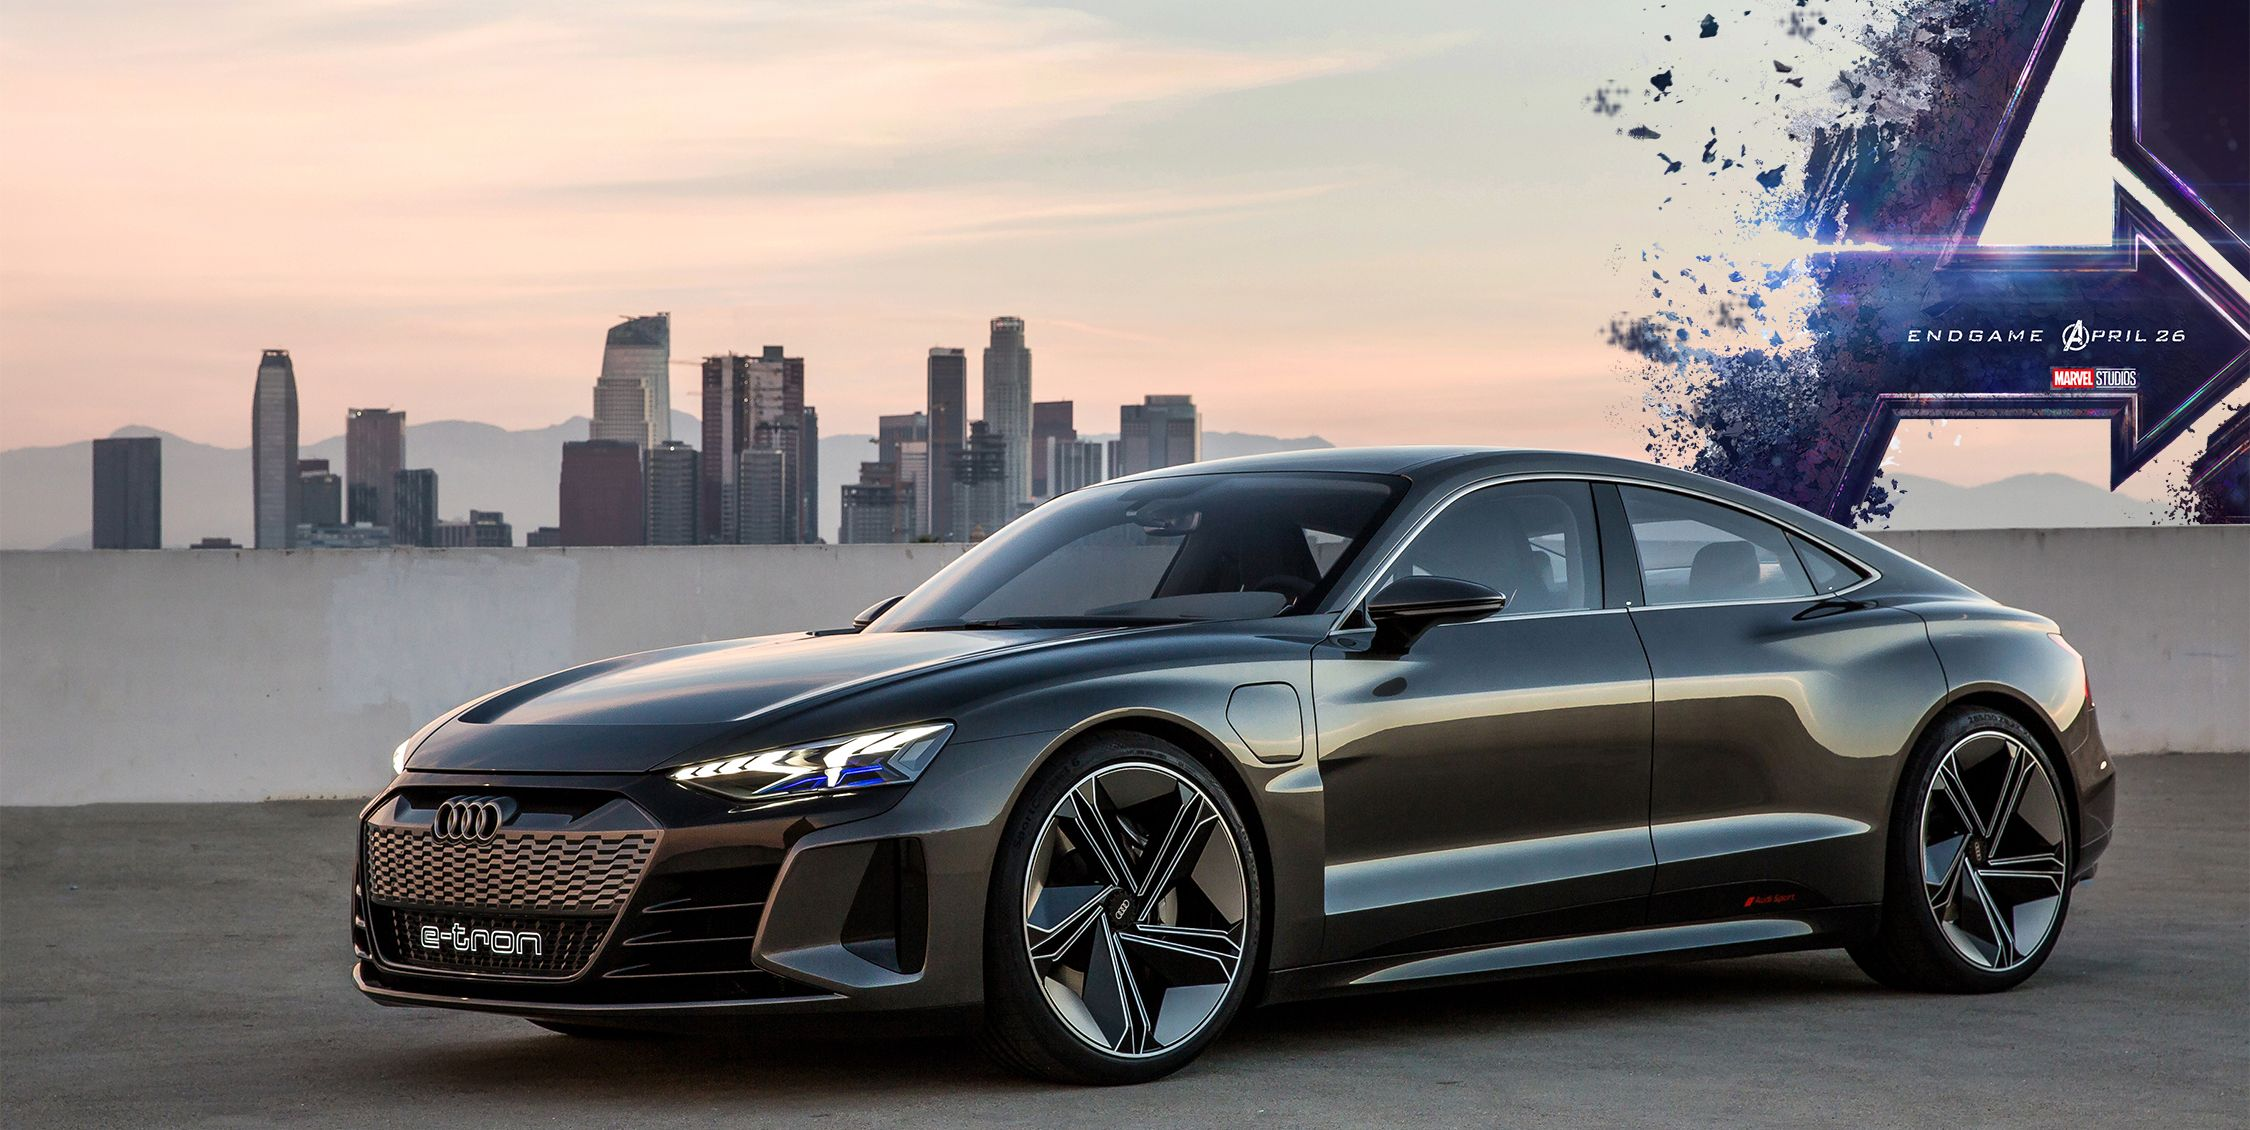 Avengers Endgame Features This Audi Concept Car New